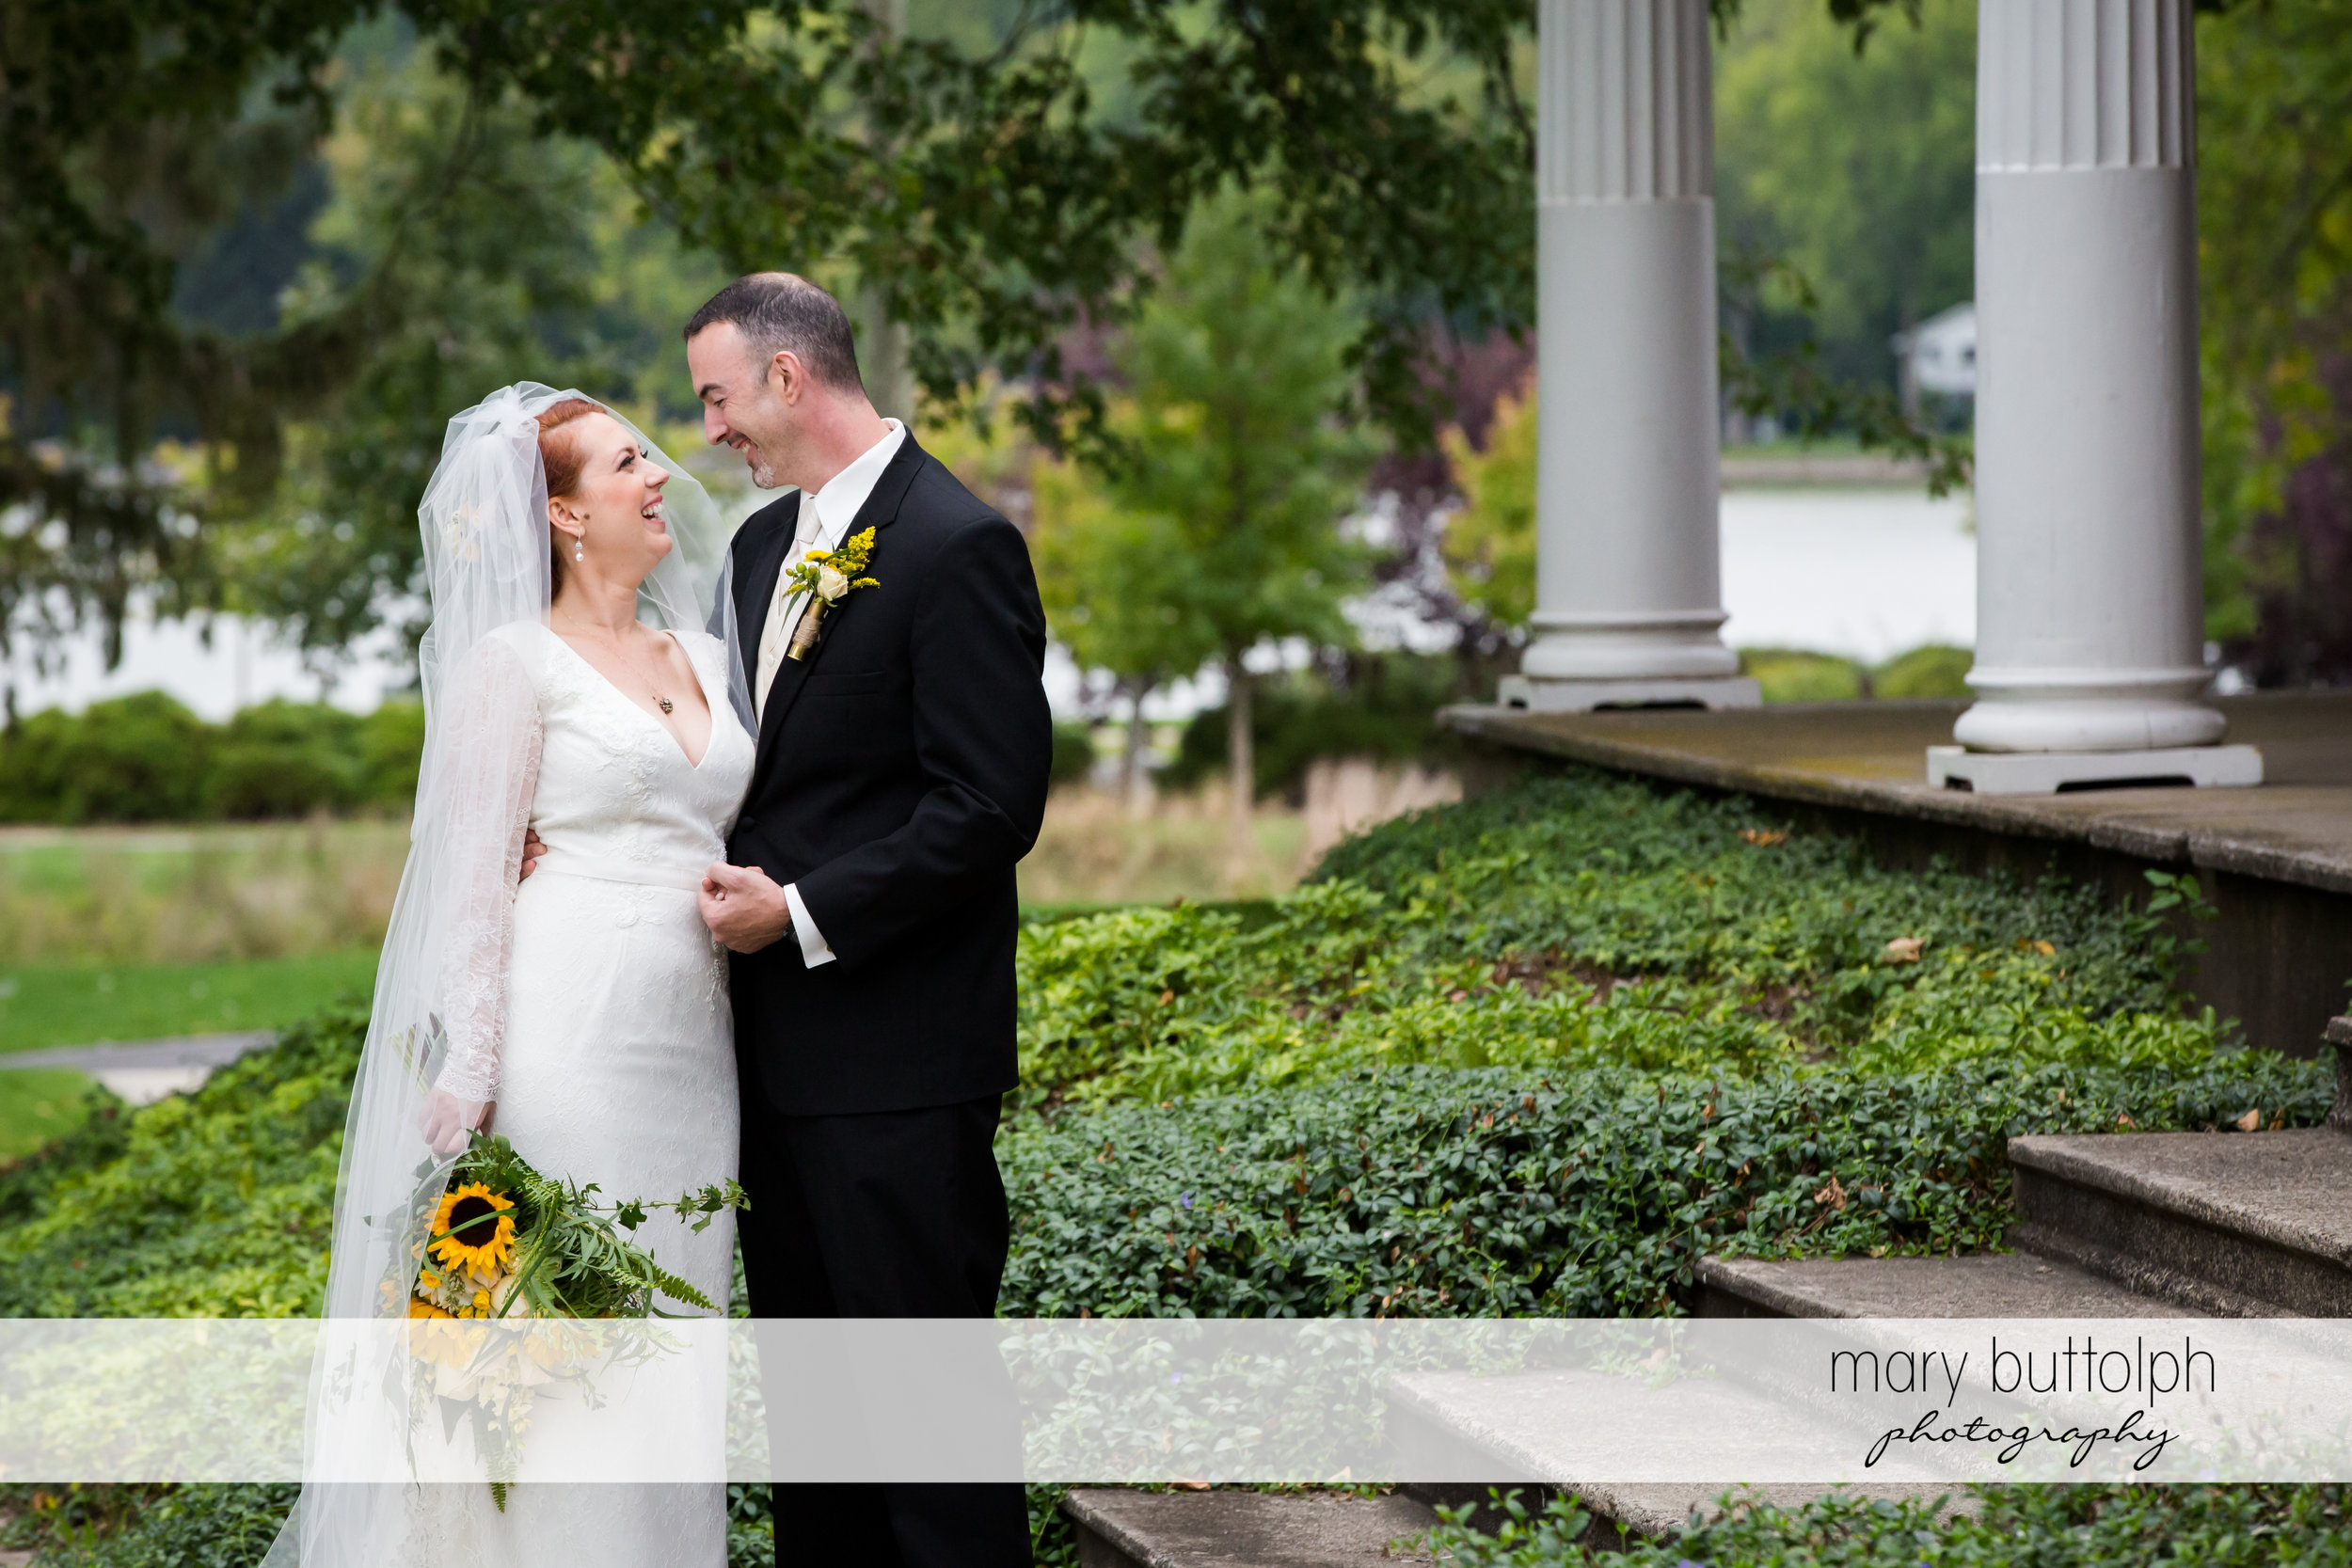 Couple pose in front of the wedding venue at Emerson Park Pavilion Wedding